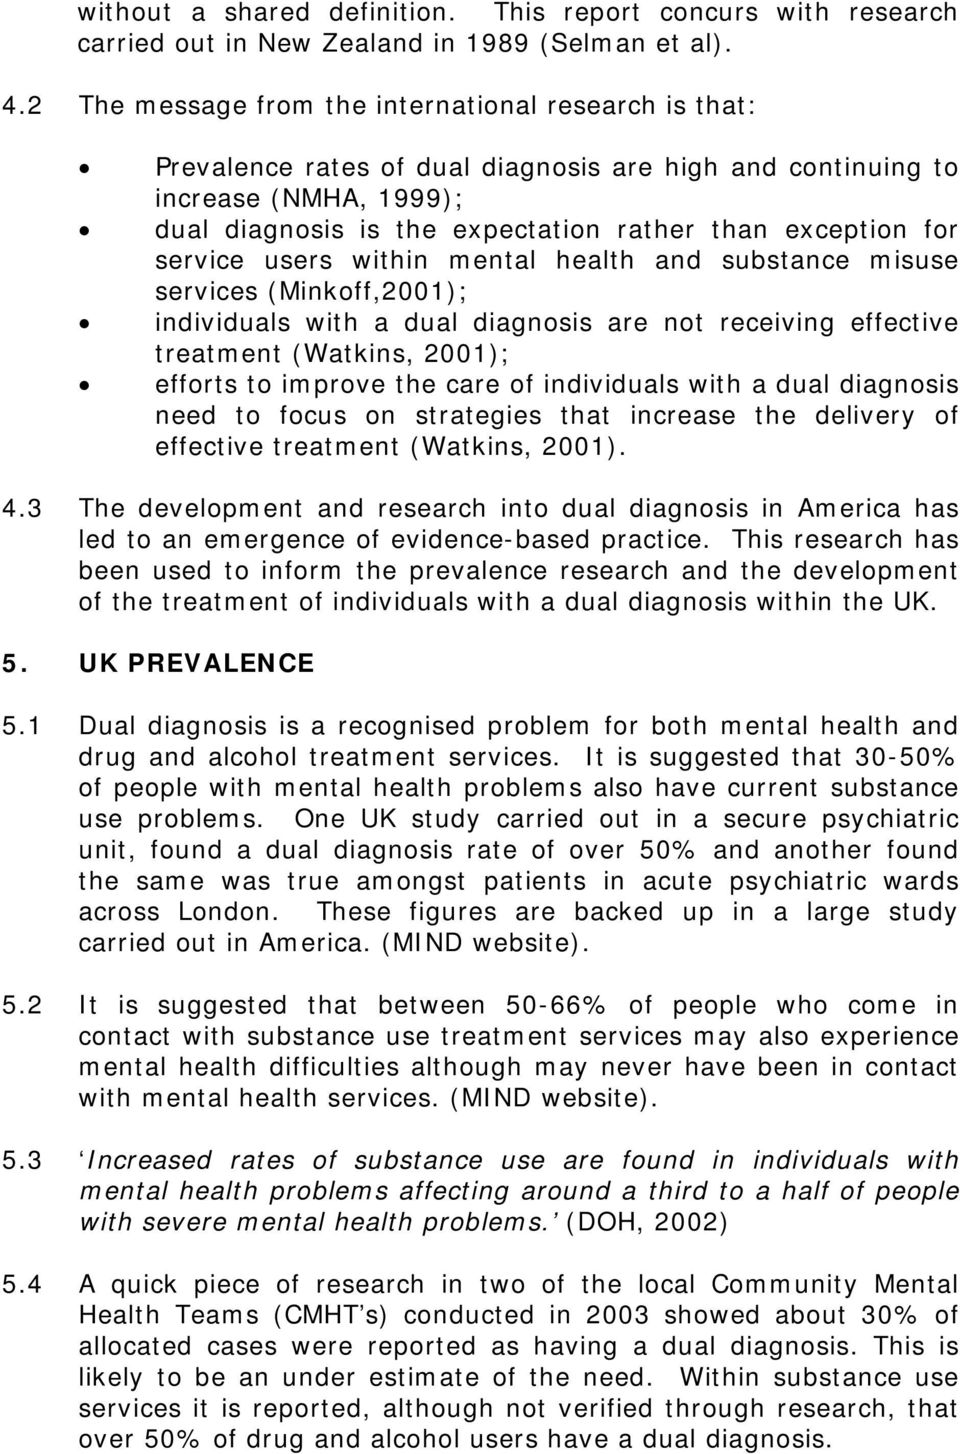 service users within mental health and substance misuse services (Minkoff,2001); individuals with a dual diagnosis are not receiving effective treatment (Watkins, 2001); efforts to improve the care